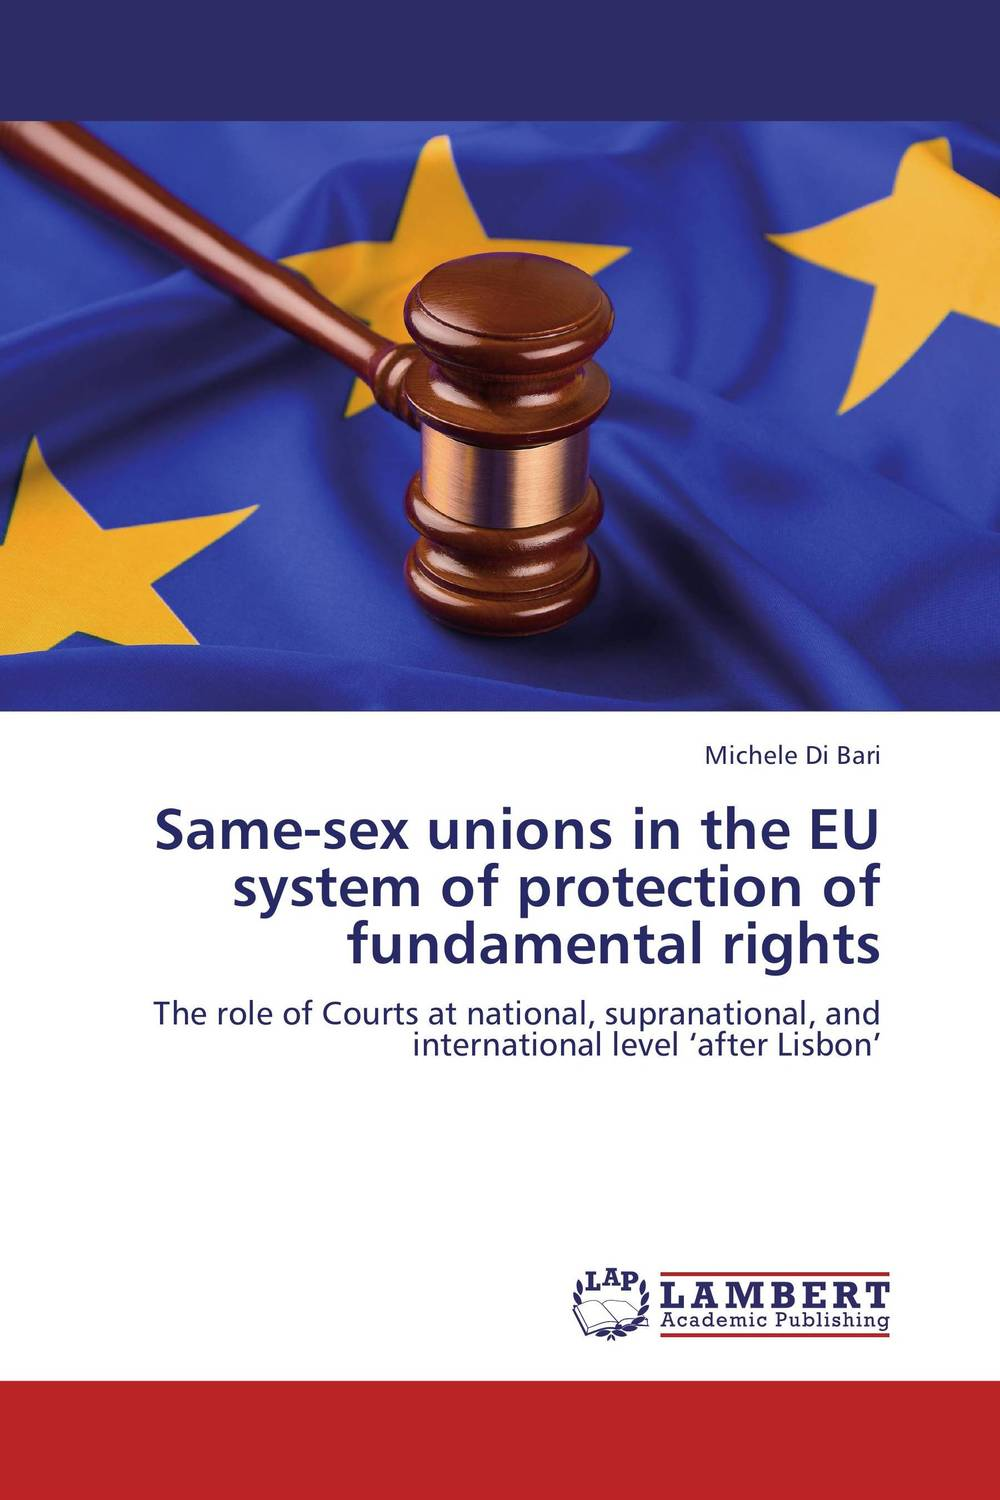 Same-sex unions in the EU system of protection of fundamental rights psychiatric disorders in postpartum period